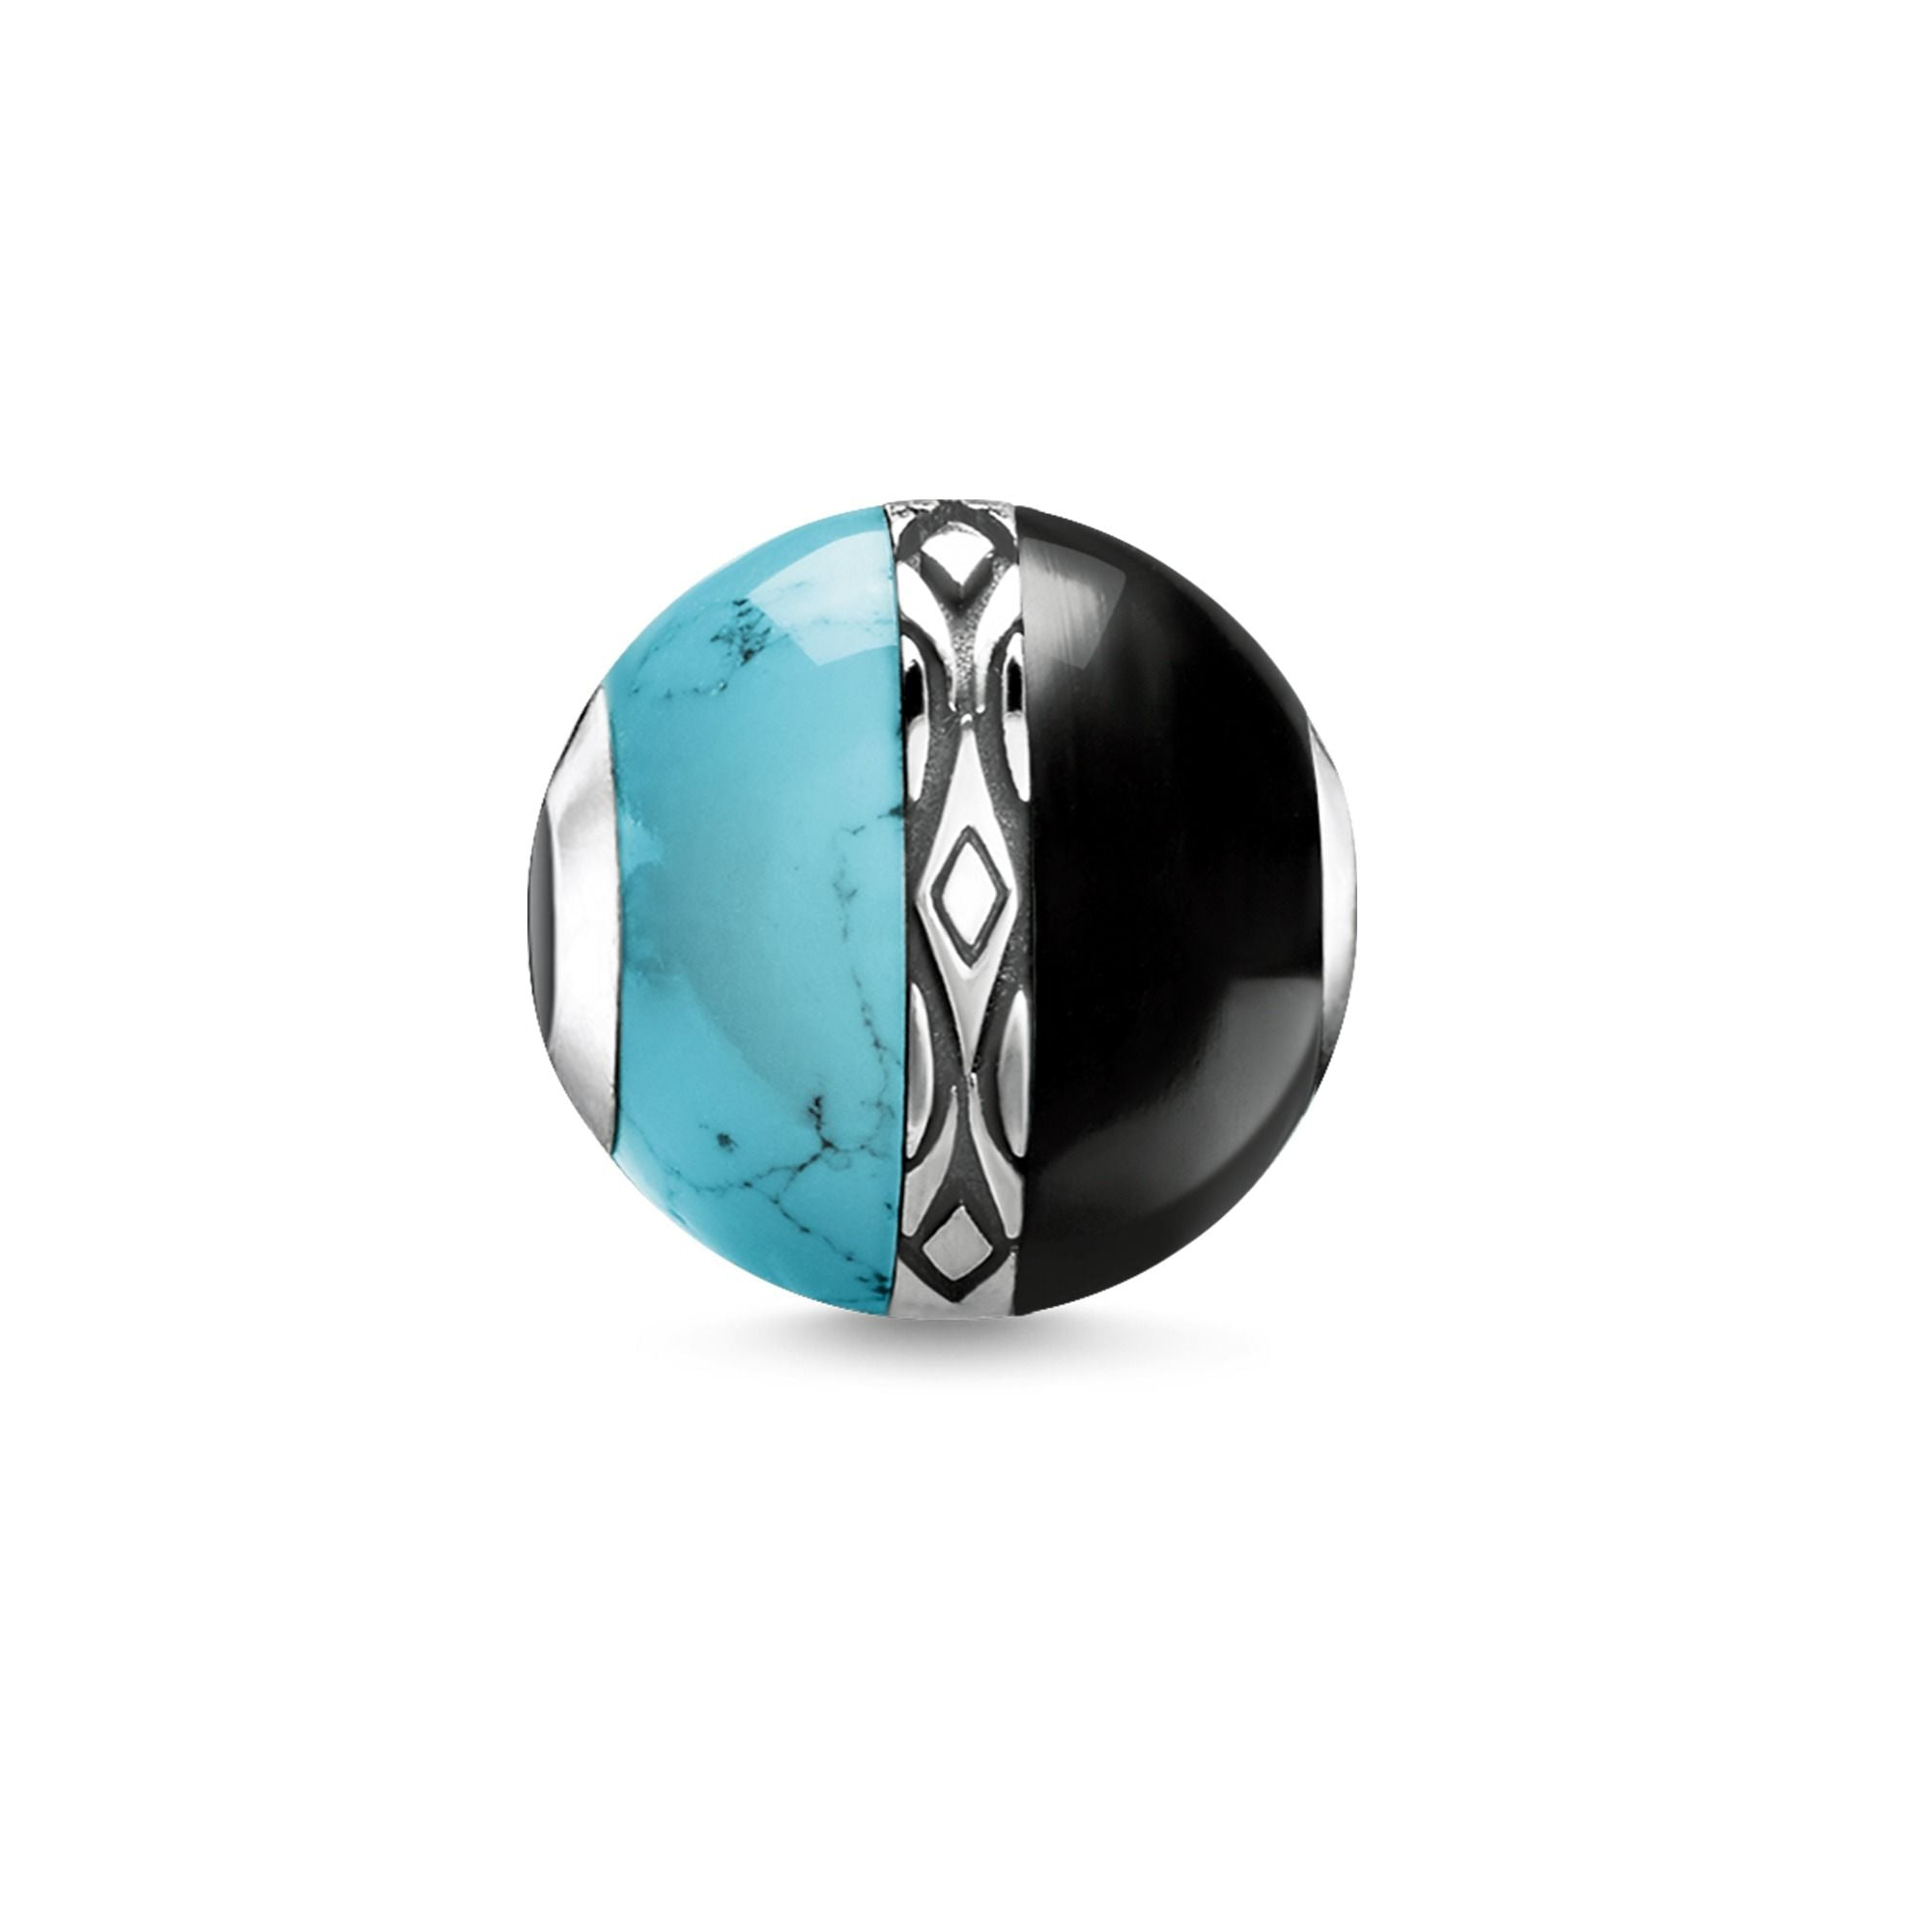 Thomas Sabo Karma Bead Ornament Turquoise & Black K0324-878-7